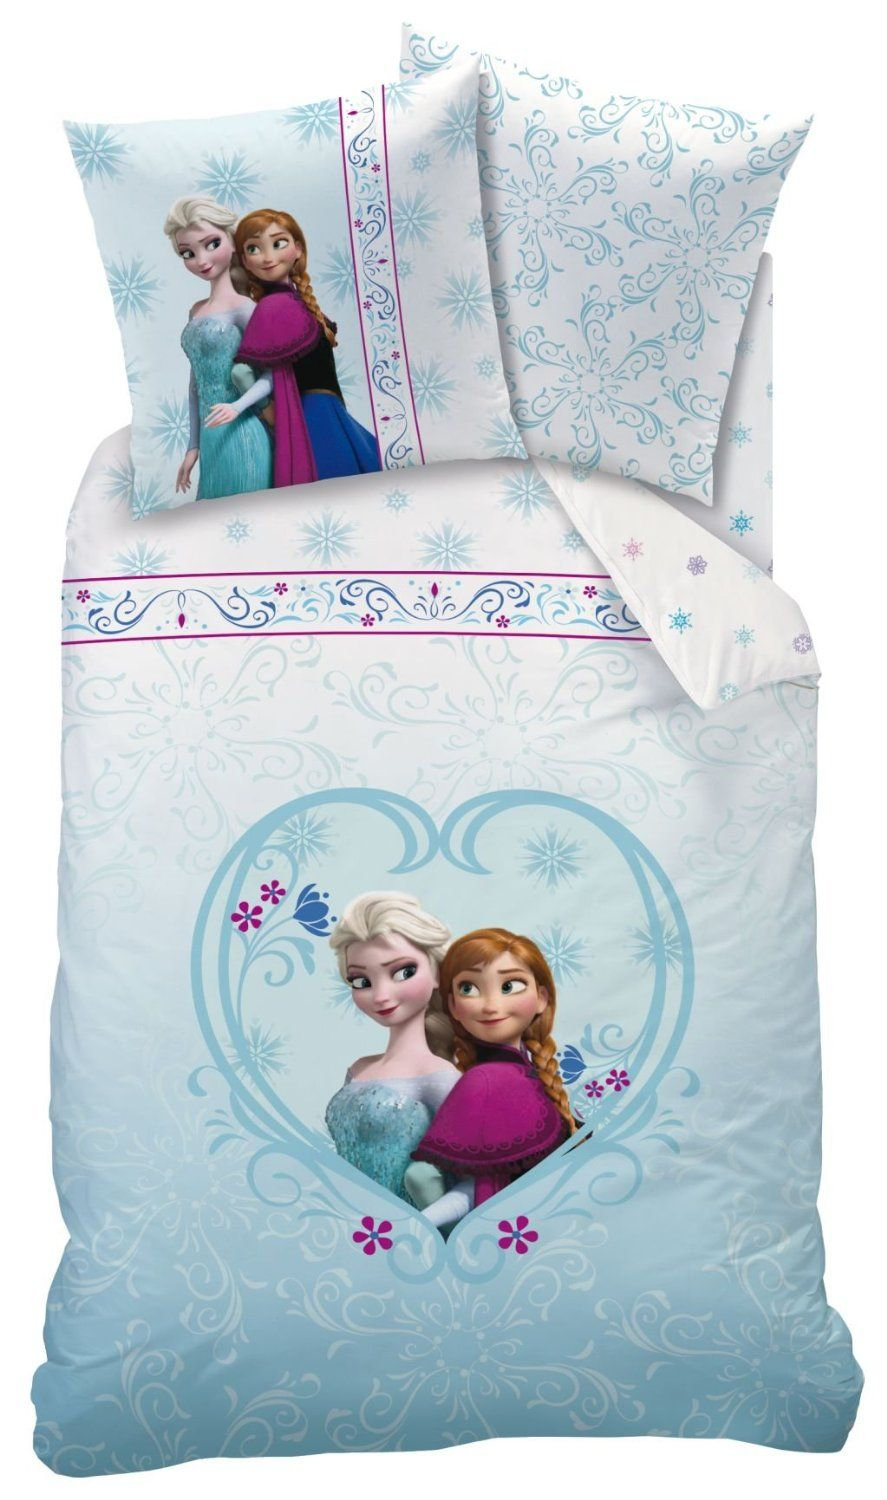 Cti 42936 Bettwasche Disney Frozen Eiskonigin 135x200 80x80cm 100